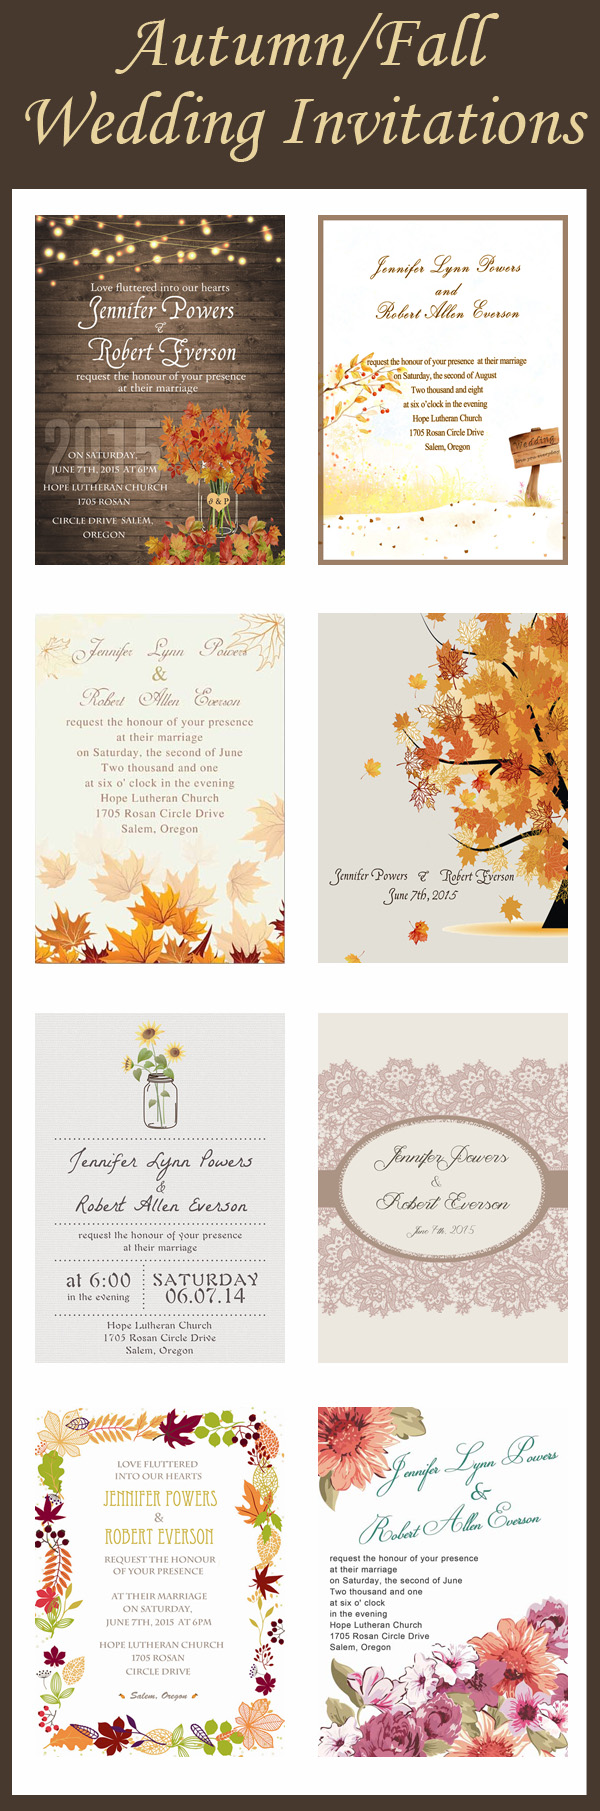 New Released Fall Wedding Invitations for Autumn Brides 2015 ...